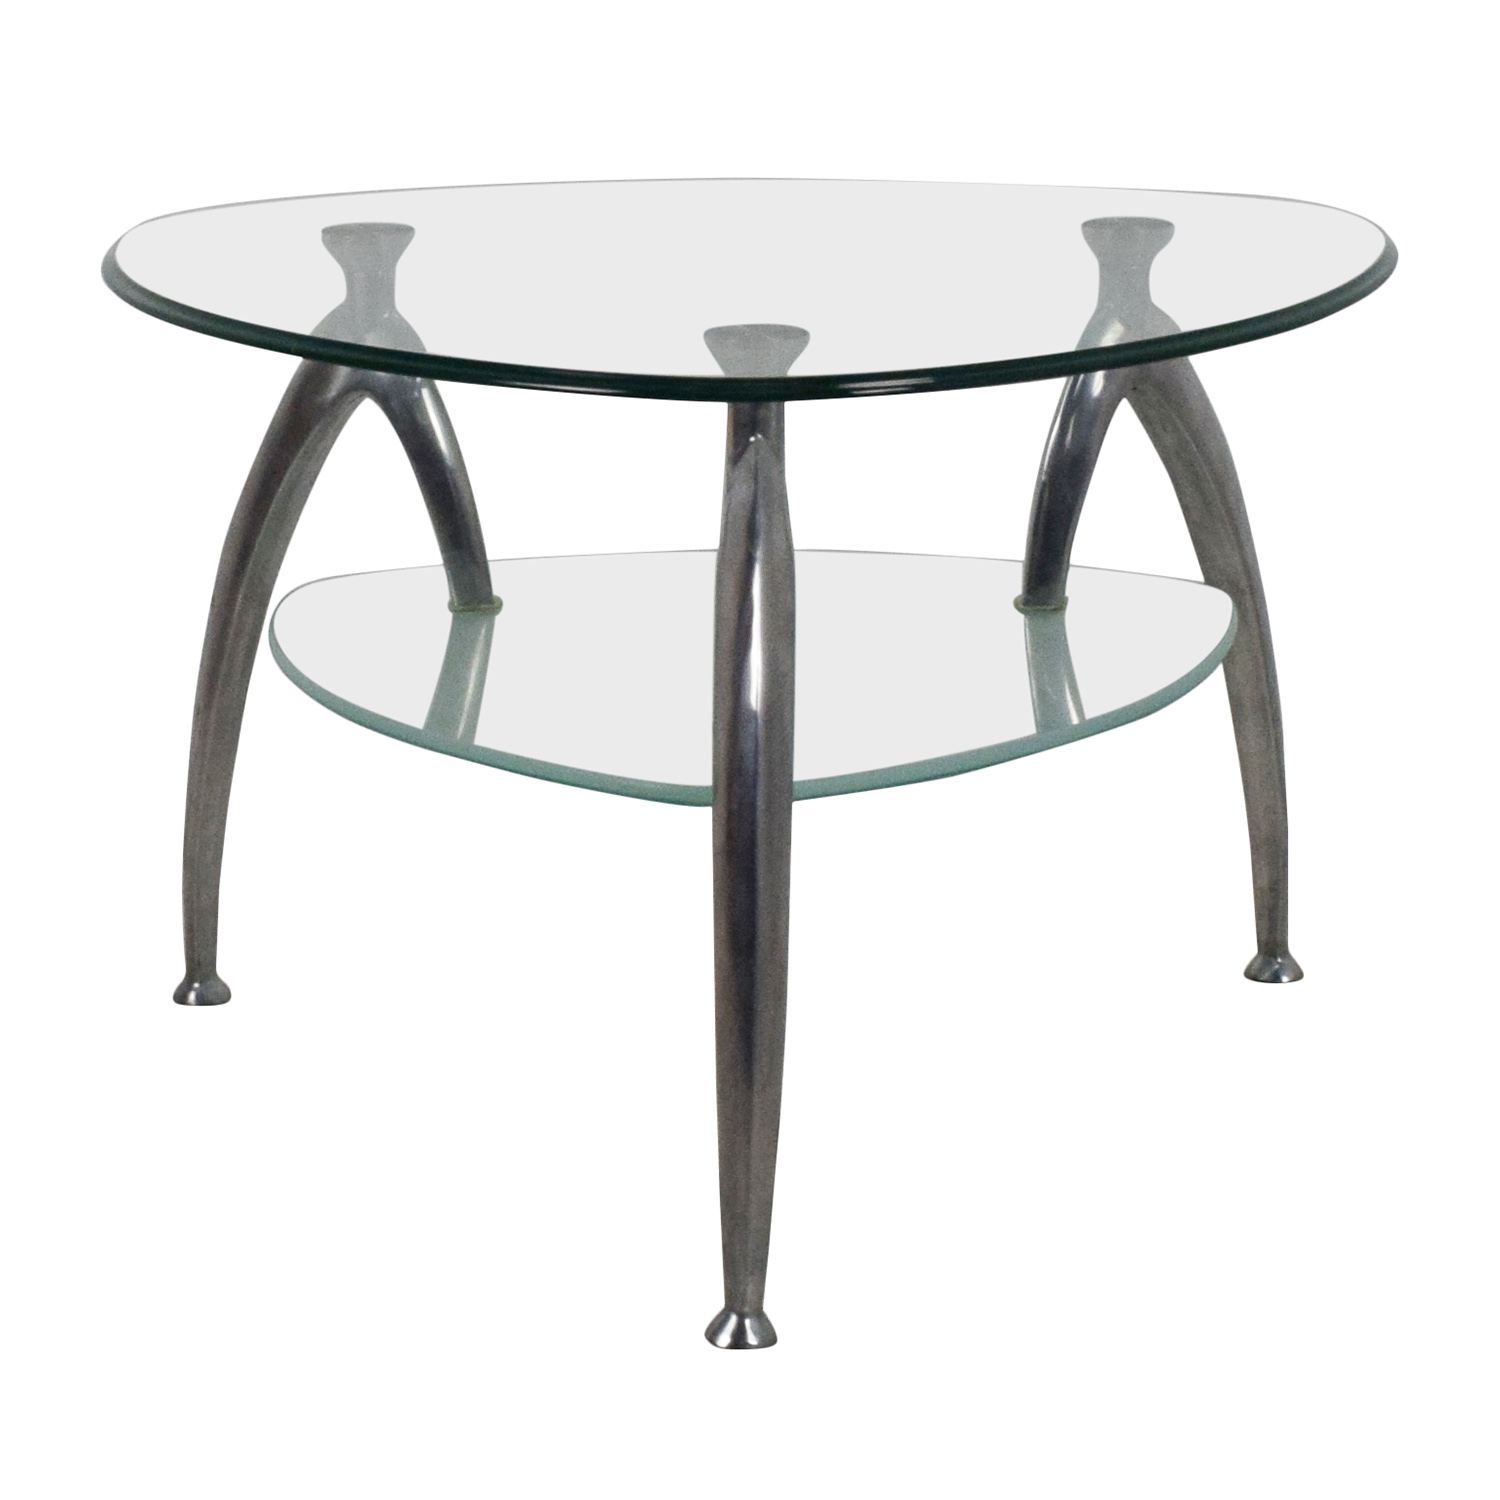 Pottery Barn Pottery Barn Glass Top Coffee Table dimensions